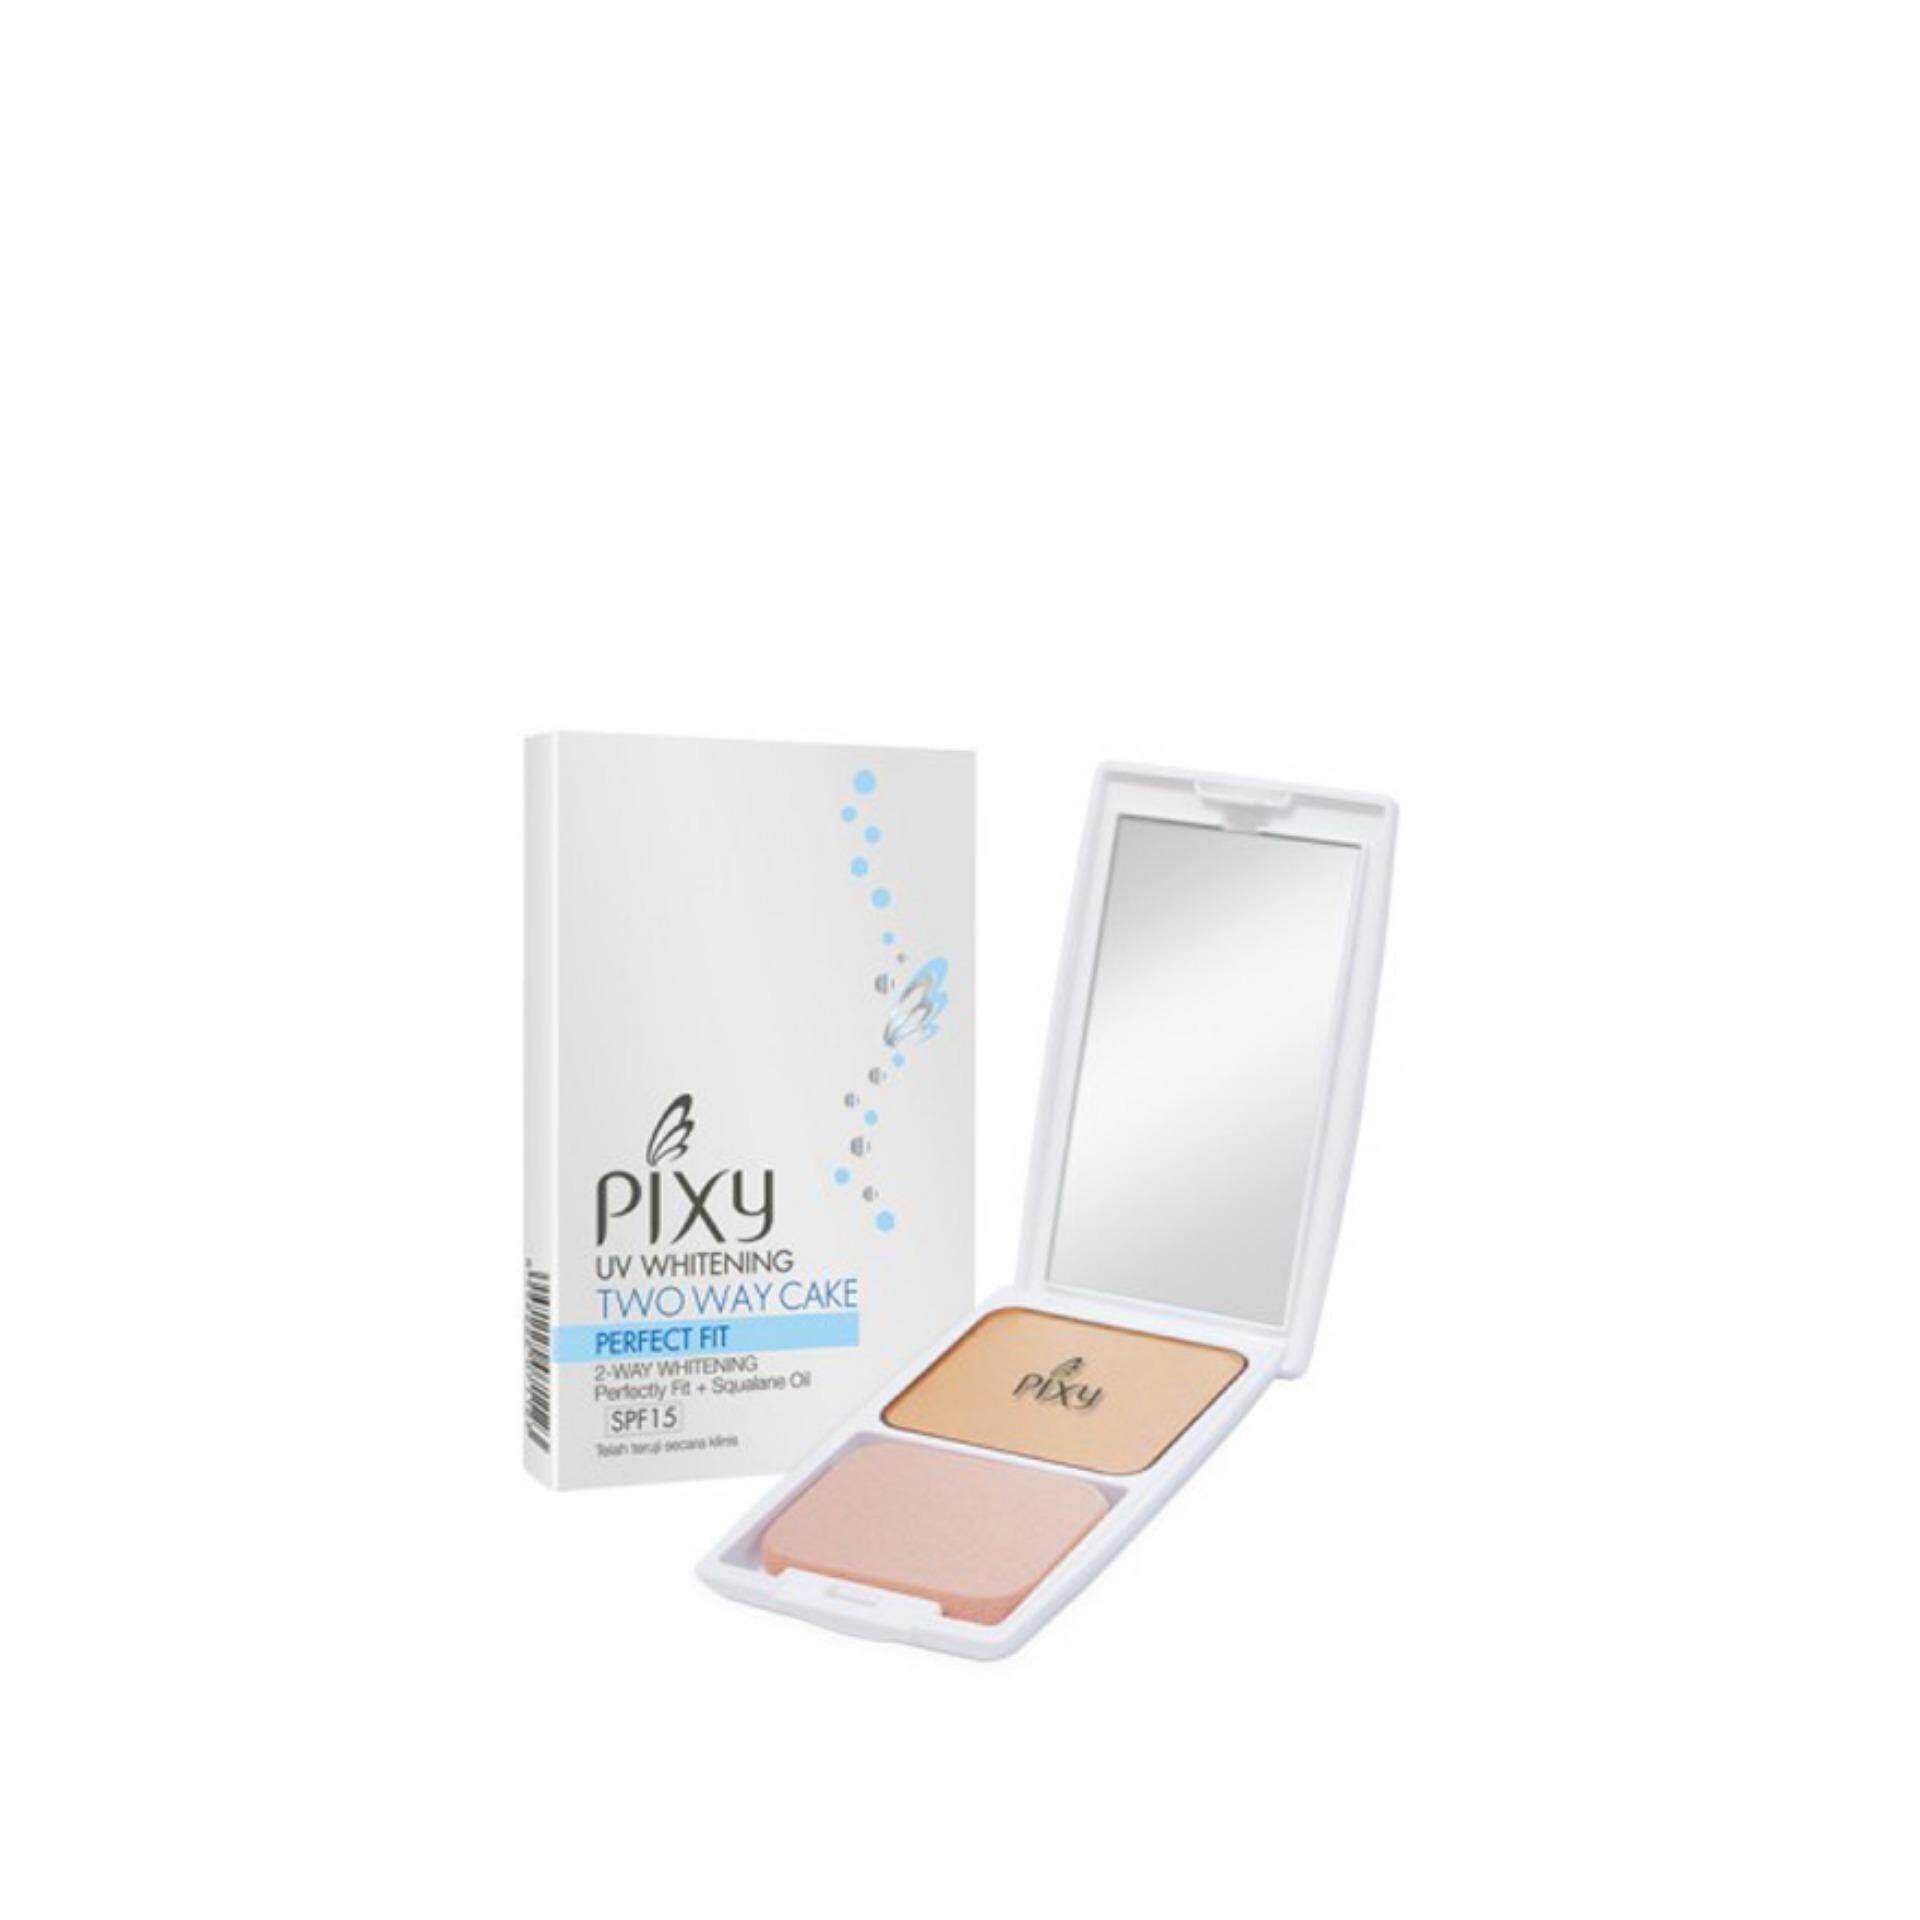 Pixy Uv Whitening Two Way Cake Perfect Fit Refill Tropical Beige - Daftar Update Harga Terbaru